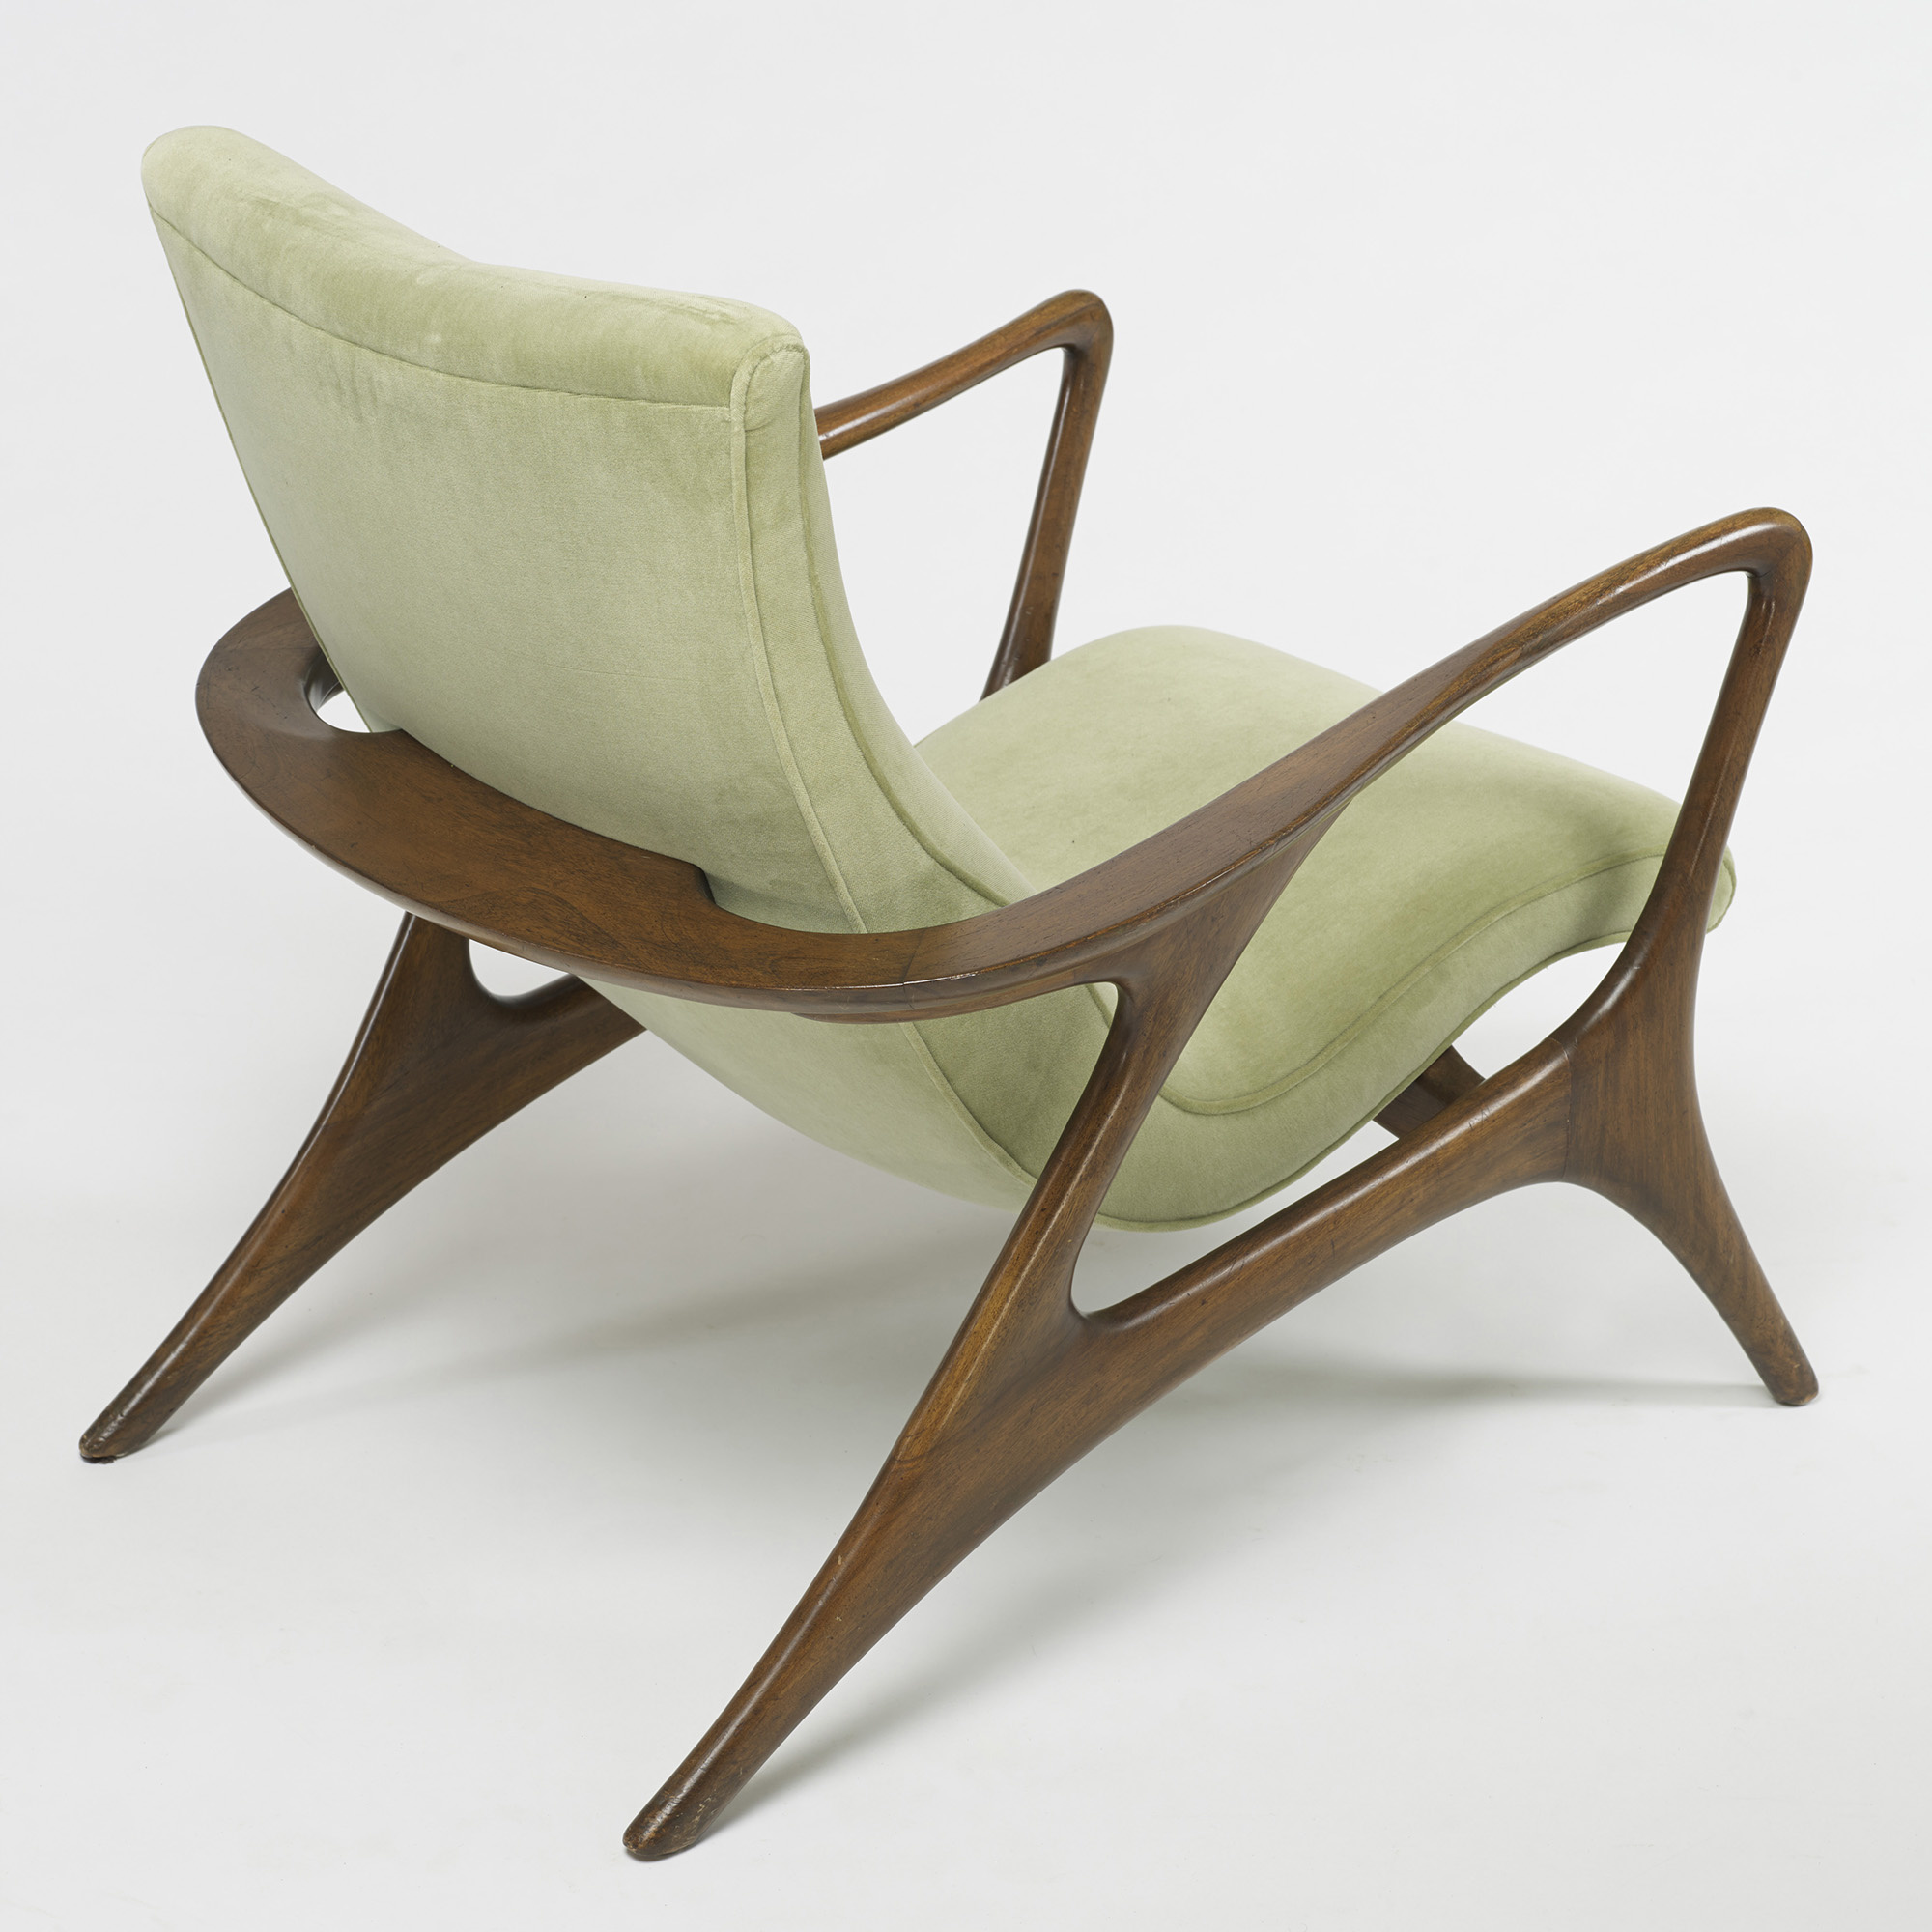 Contour Chair Lounge 365 Vladimir Kagan Contour Lounge Chairs Pair Design 17